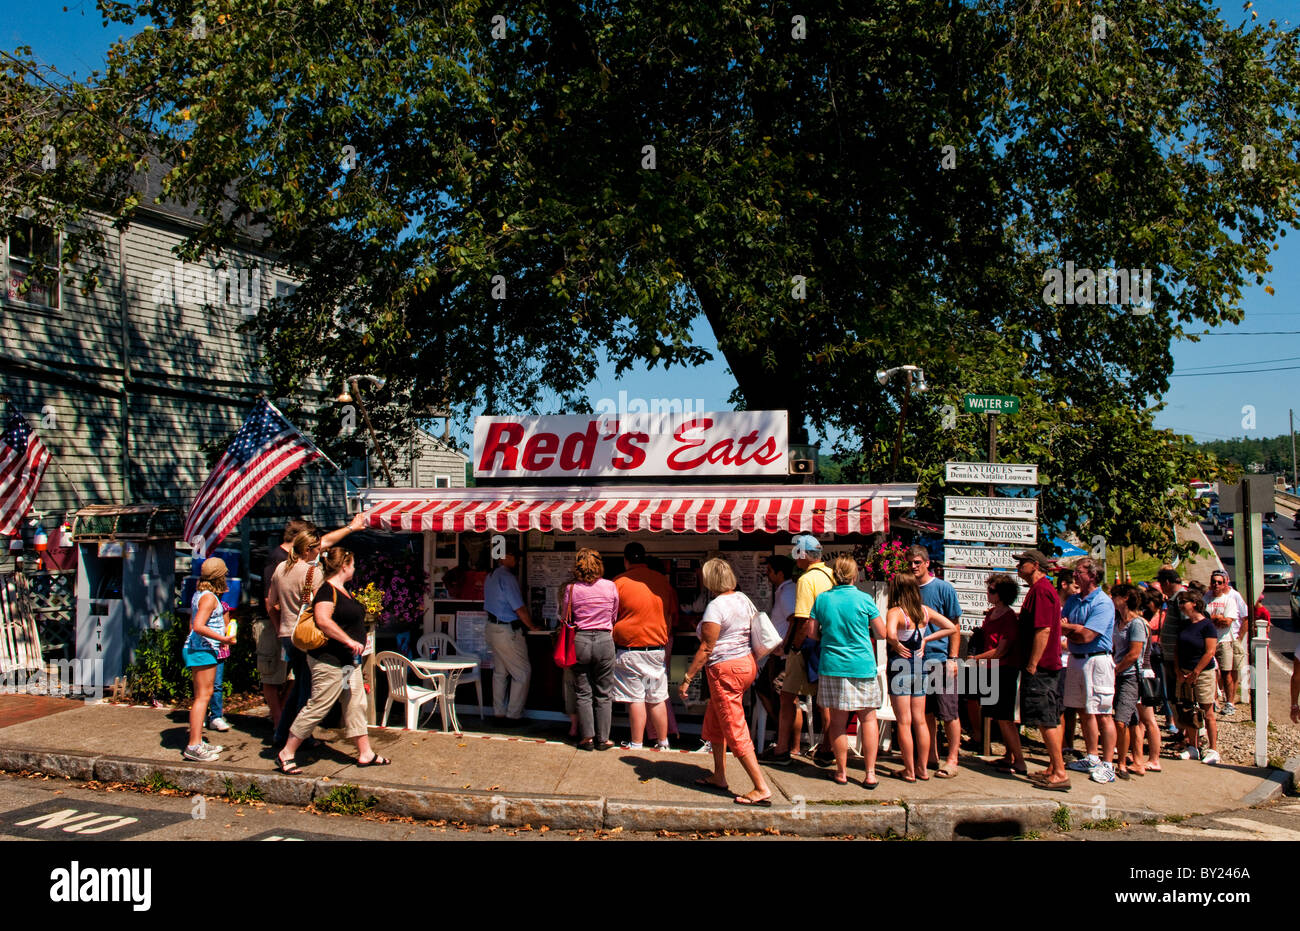 Crowded line waiting to eat at popular Reds Eats in Wicasset Maine in New England - Stock Image